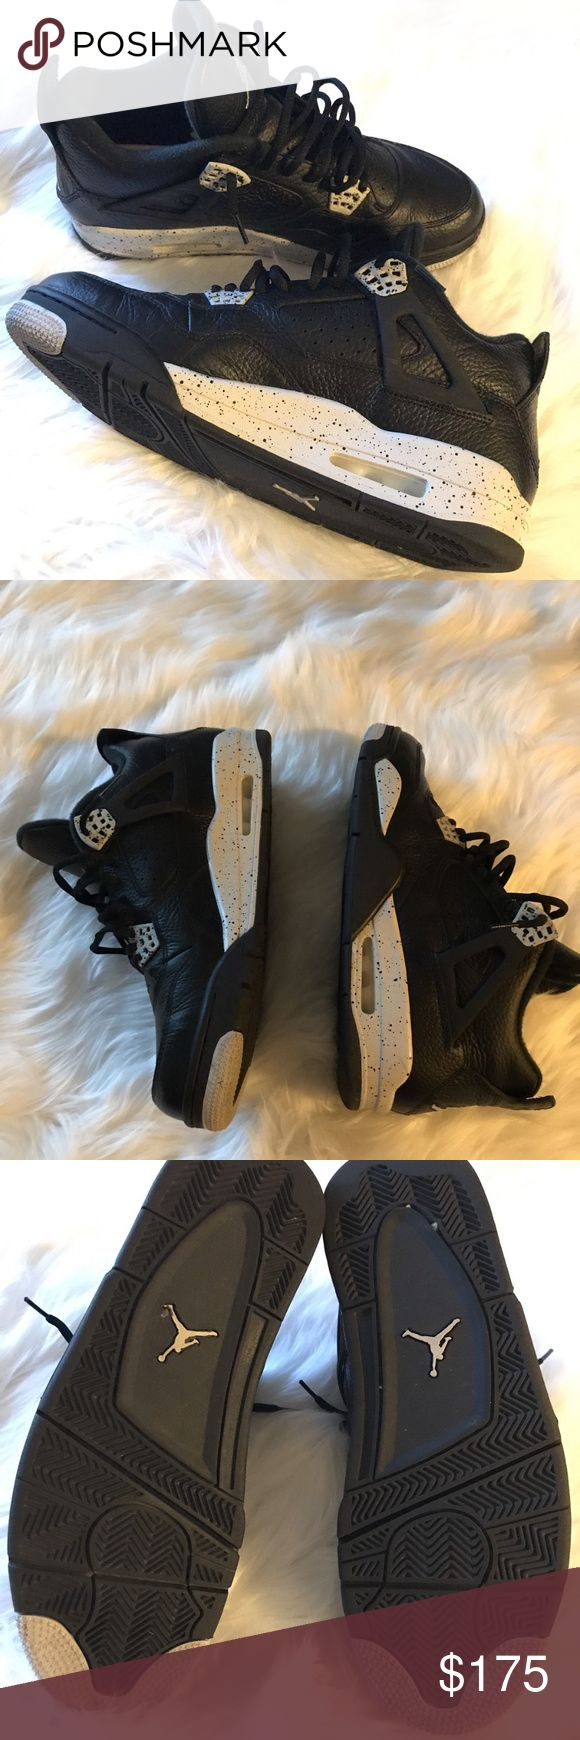 "Air Jordon Retro 4 ""Oreo"" Black Tech Grey Pre-owned. Pristine condition MENS Size 11.  Worn once. Minimal wear on soles, please review photos.  Feel and look BRAND NEW.  Will come with original box  Shipped double boxed.  Buy with confidence and don't hesitate to ask me any questions you may have. Air Jordan Shoes Sneakers"